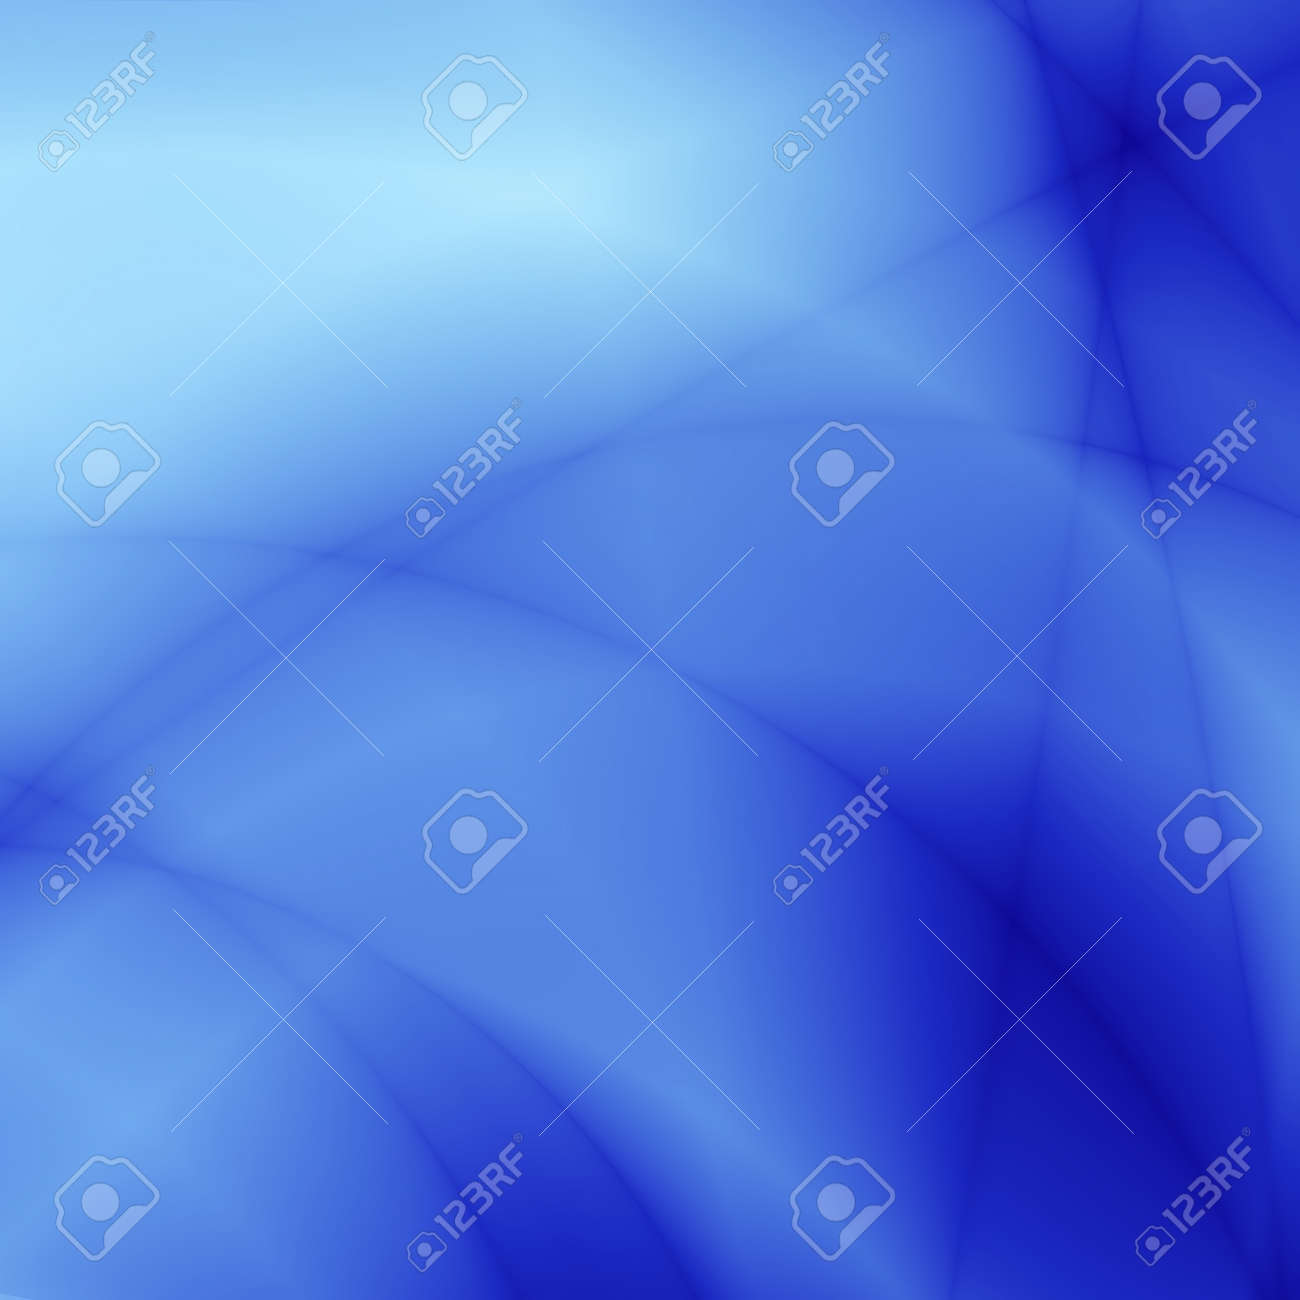 abstract smoothed lines and gradients of blue color Stock Photo - 1718583